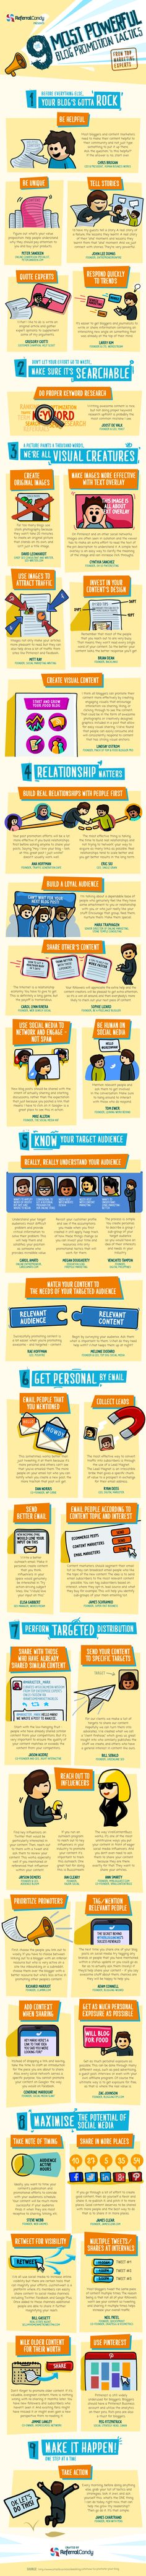 It's about content, style and value more than SEO We like this infographic which has been created with newcomers toblogging in mind. Itpractices what it. Marketing topic(s):Business blogging. Advice by Susanne Colwyn.